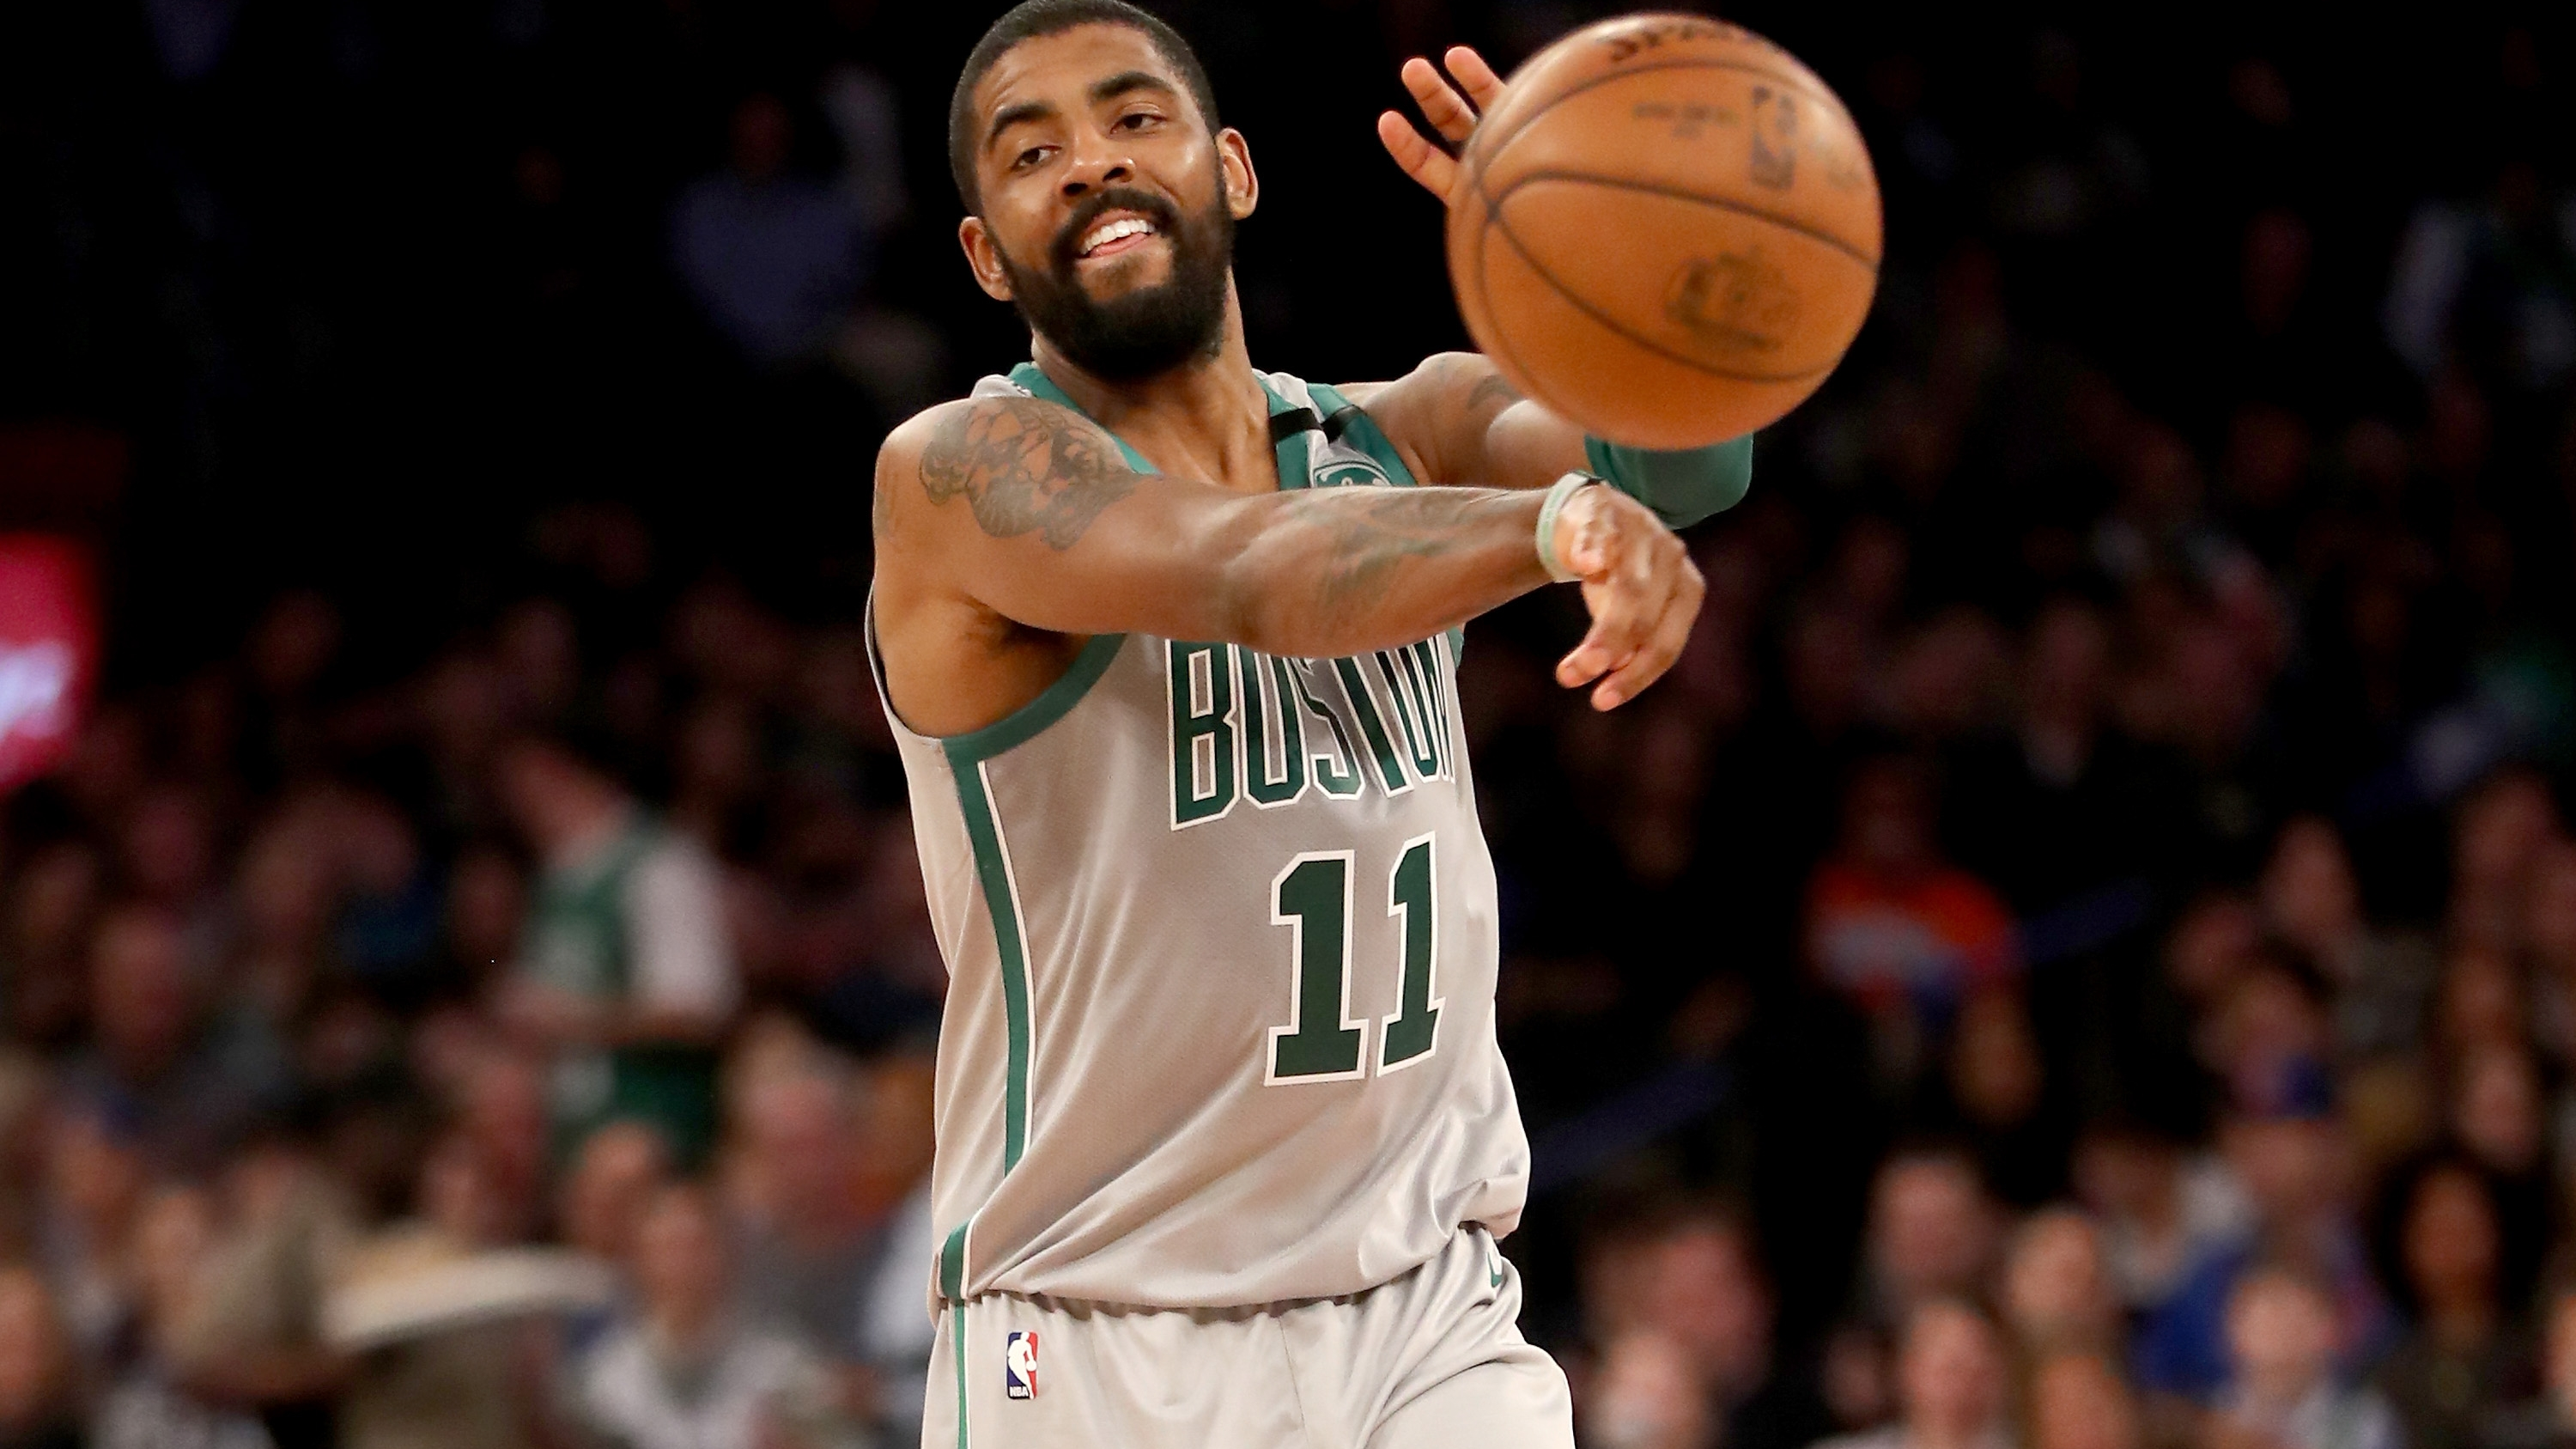 Kyrie Irving ignores free agency talk, is happy with Celtics: 'We're pretty f-ing good here'